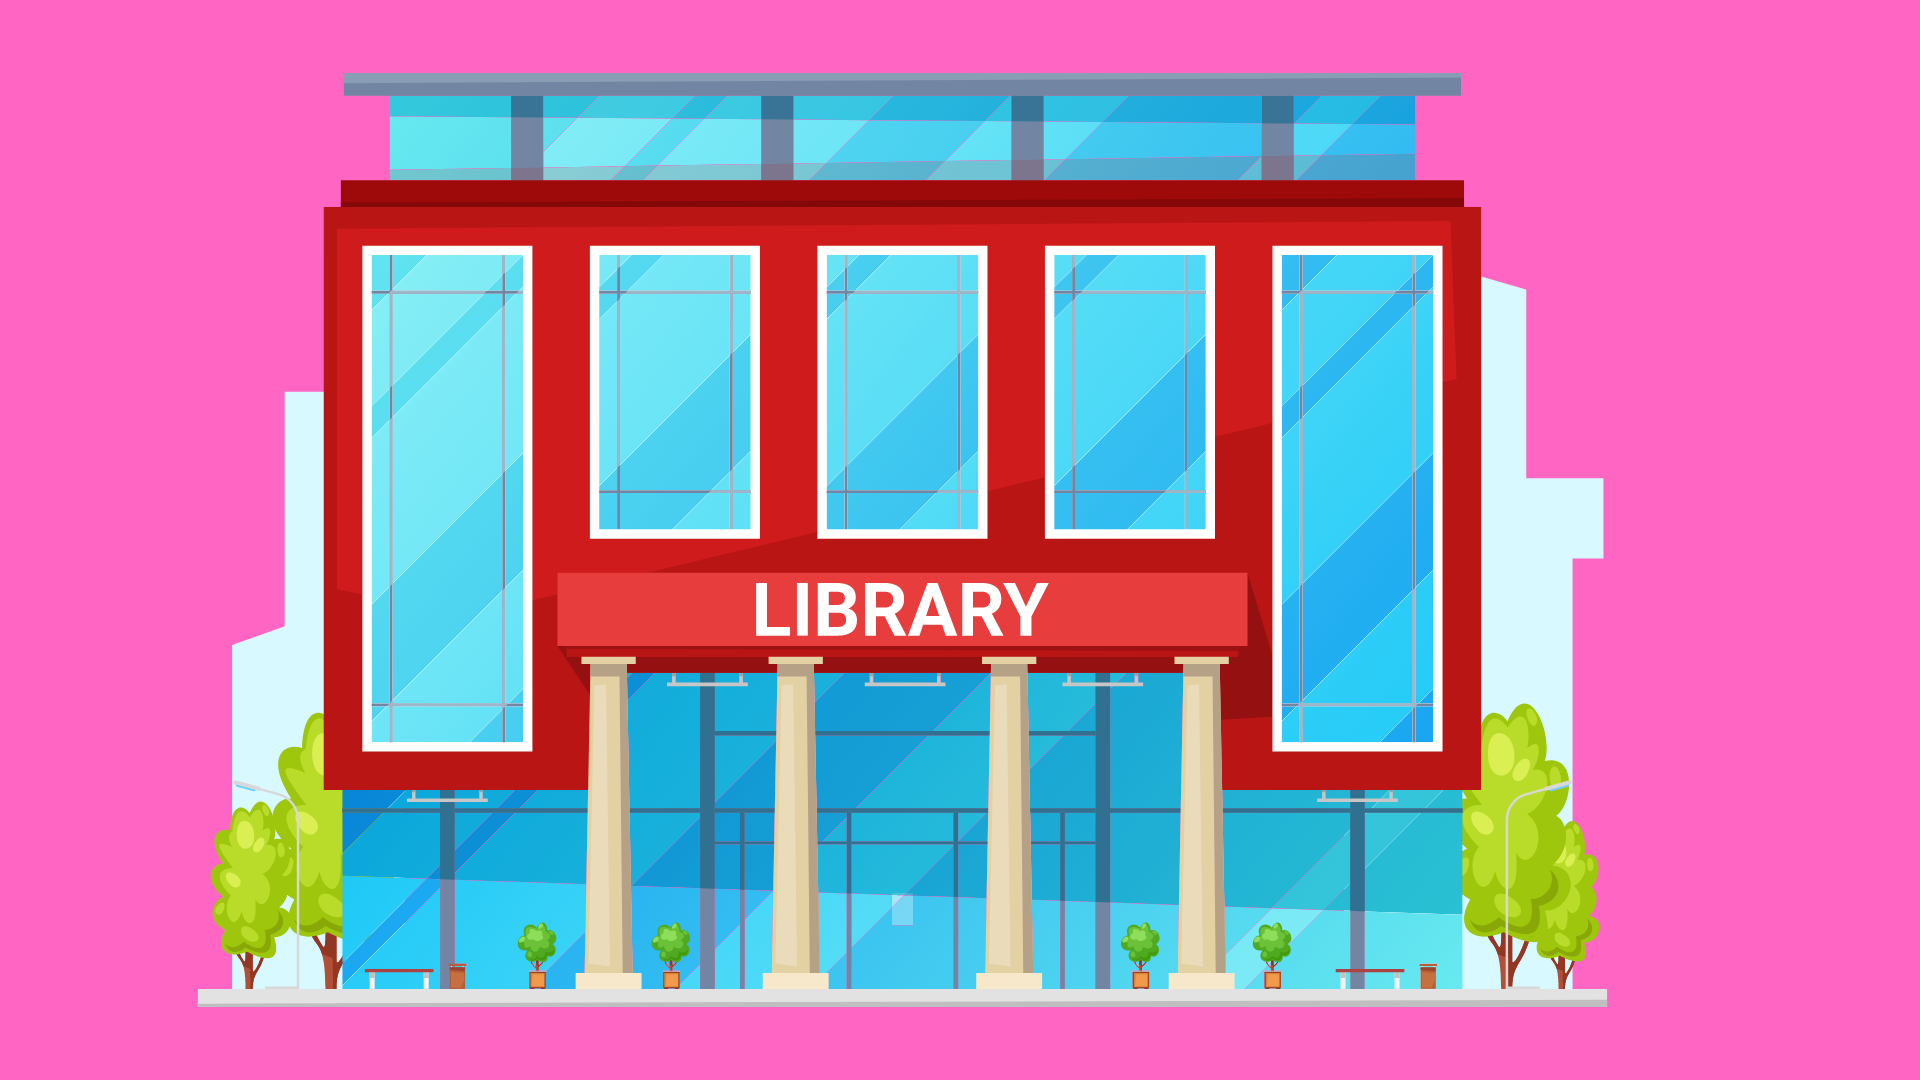 illustration of a library building